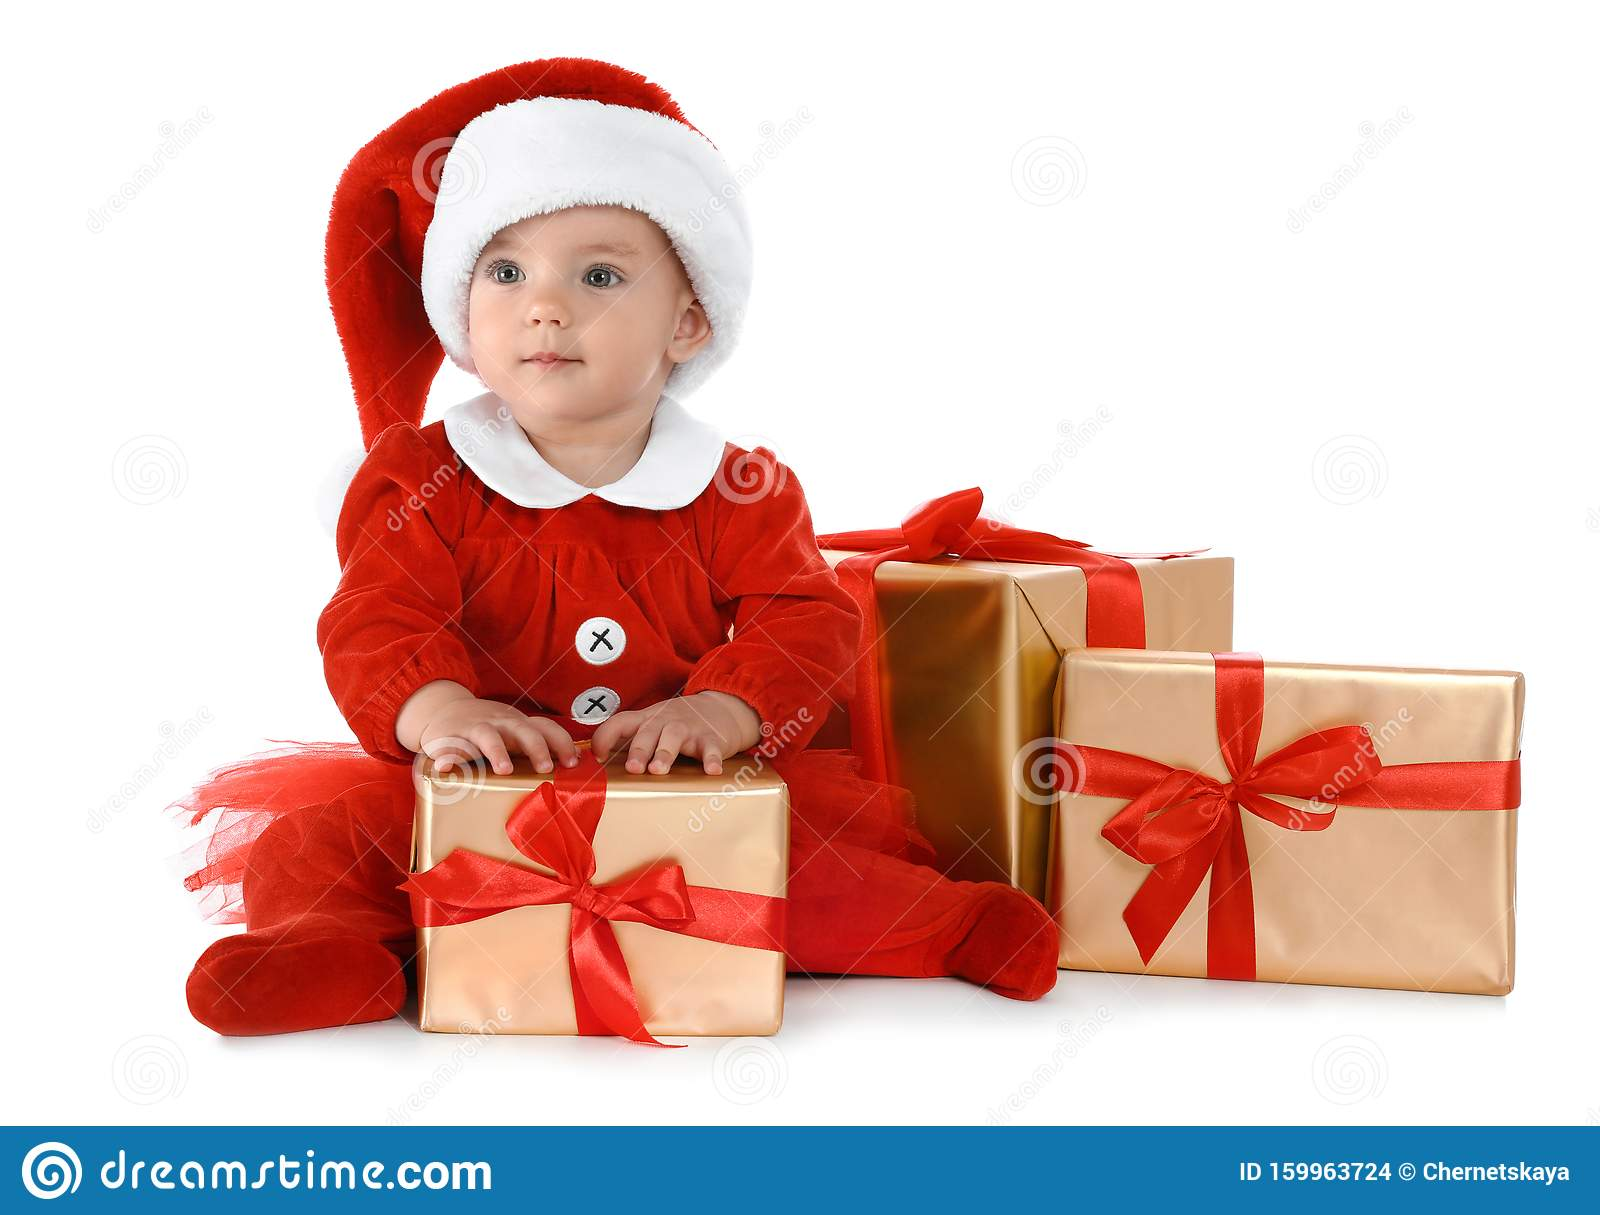 Festively dressed baby with gift boxes. Christmas celebration